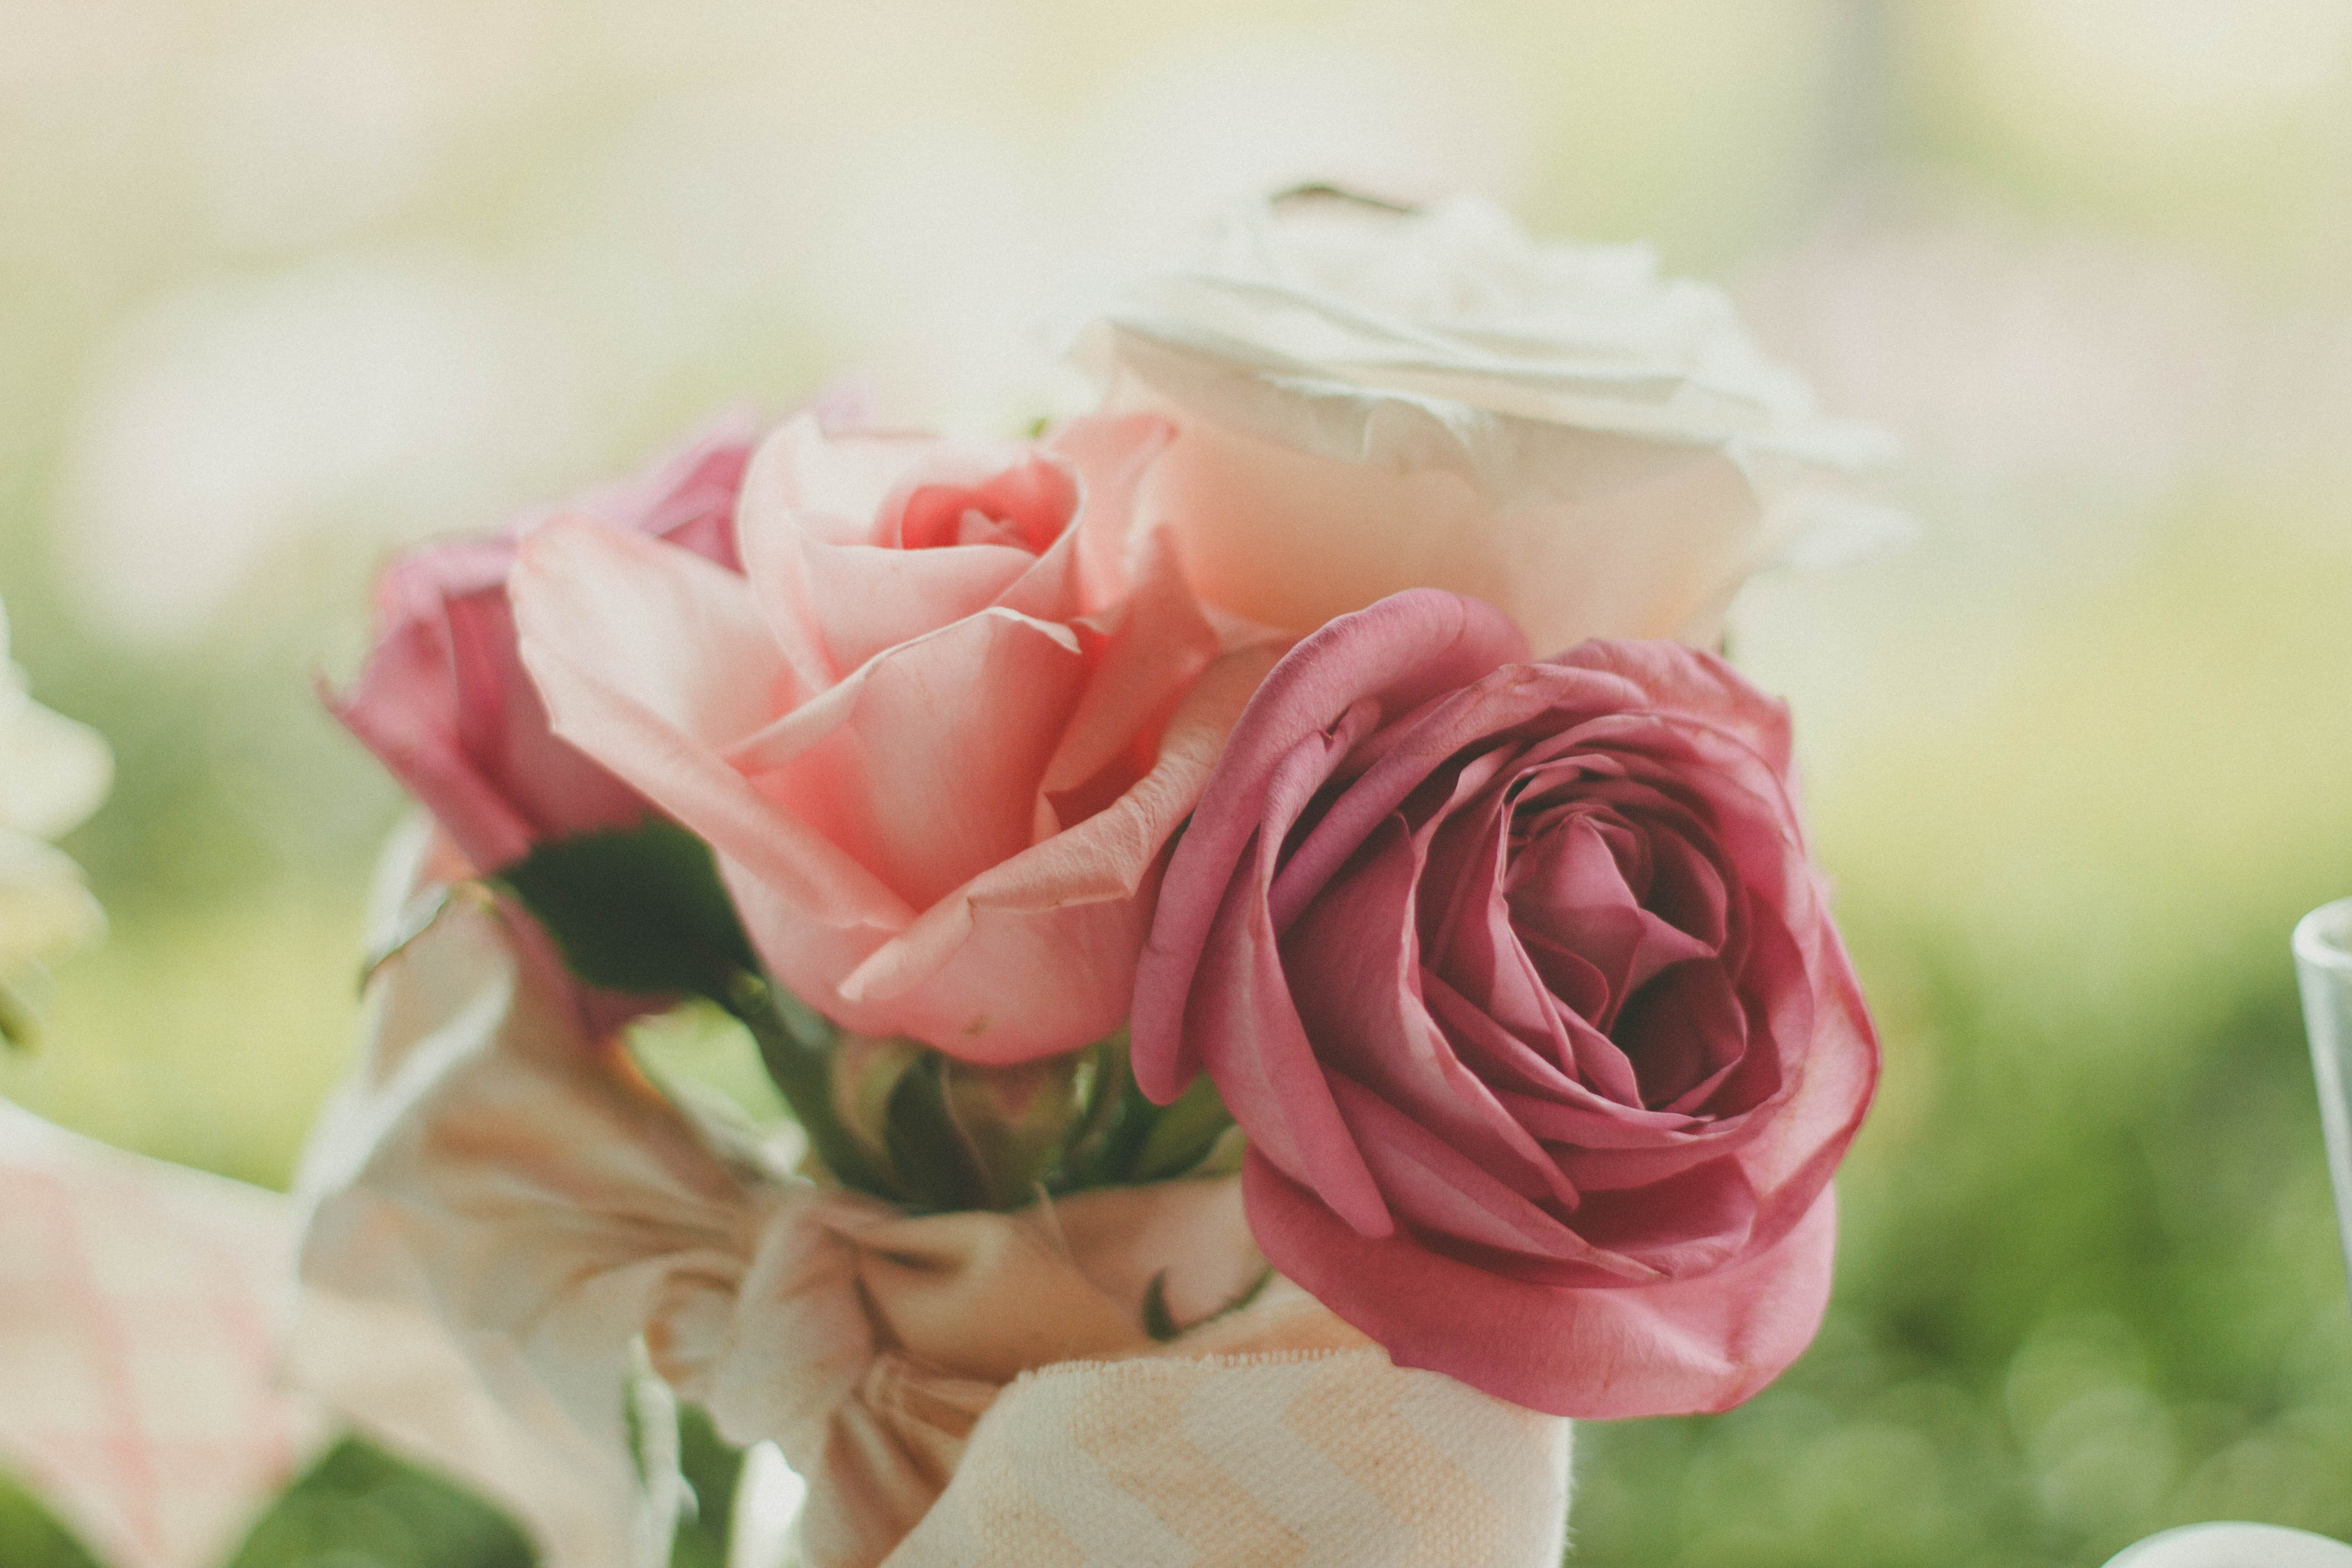 pink and white roses closeup photography